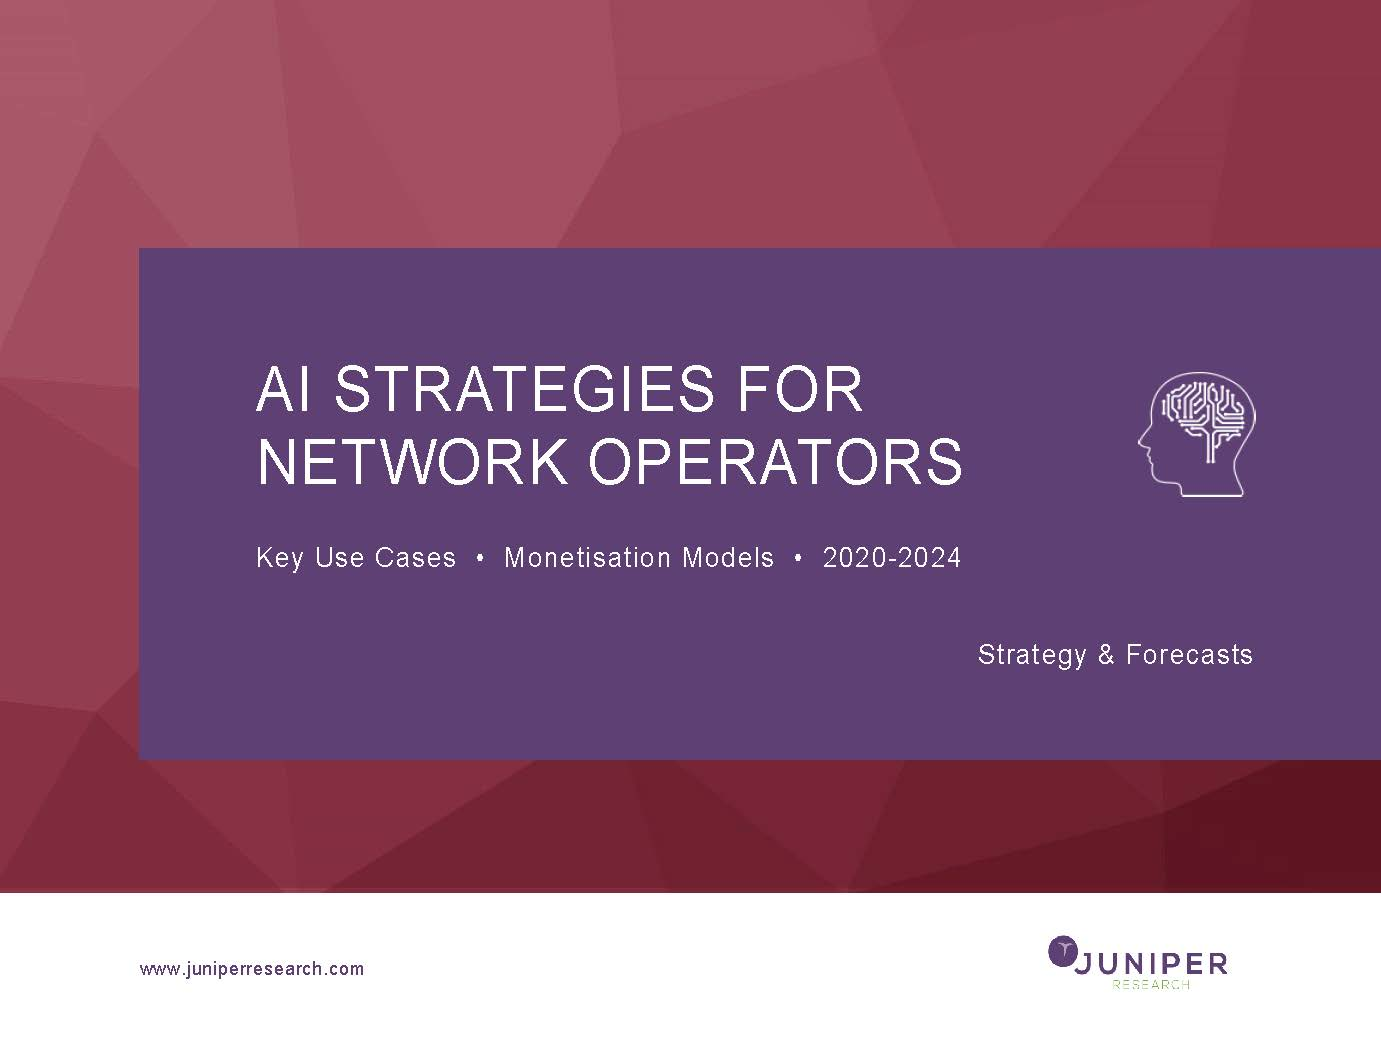 AI Strategies for Network Operators